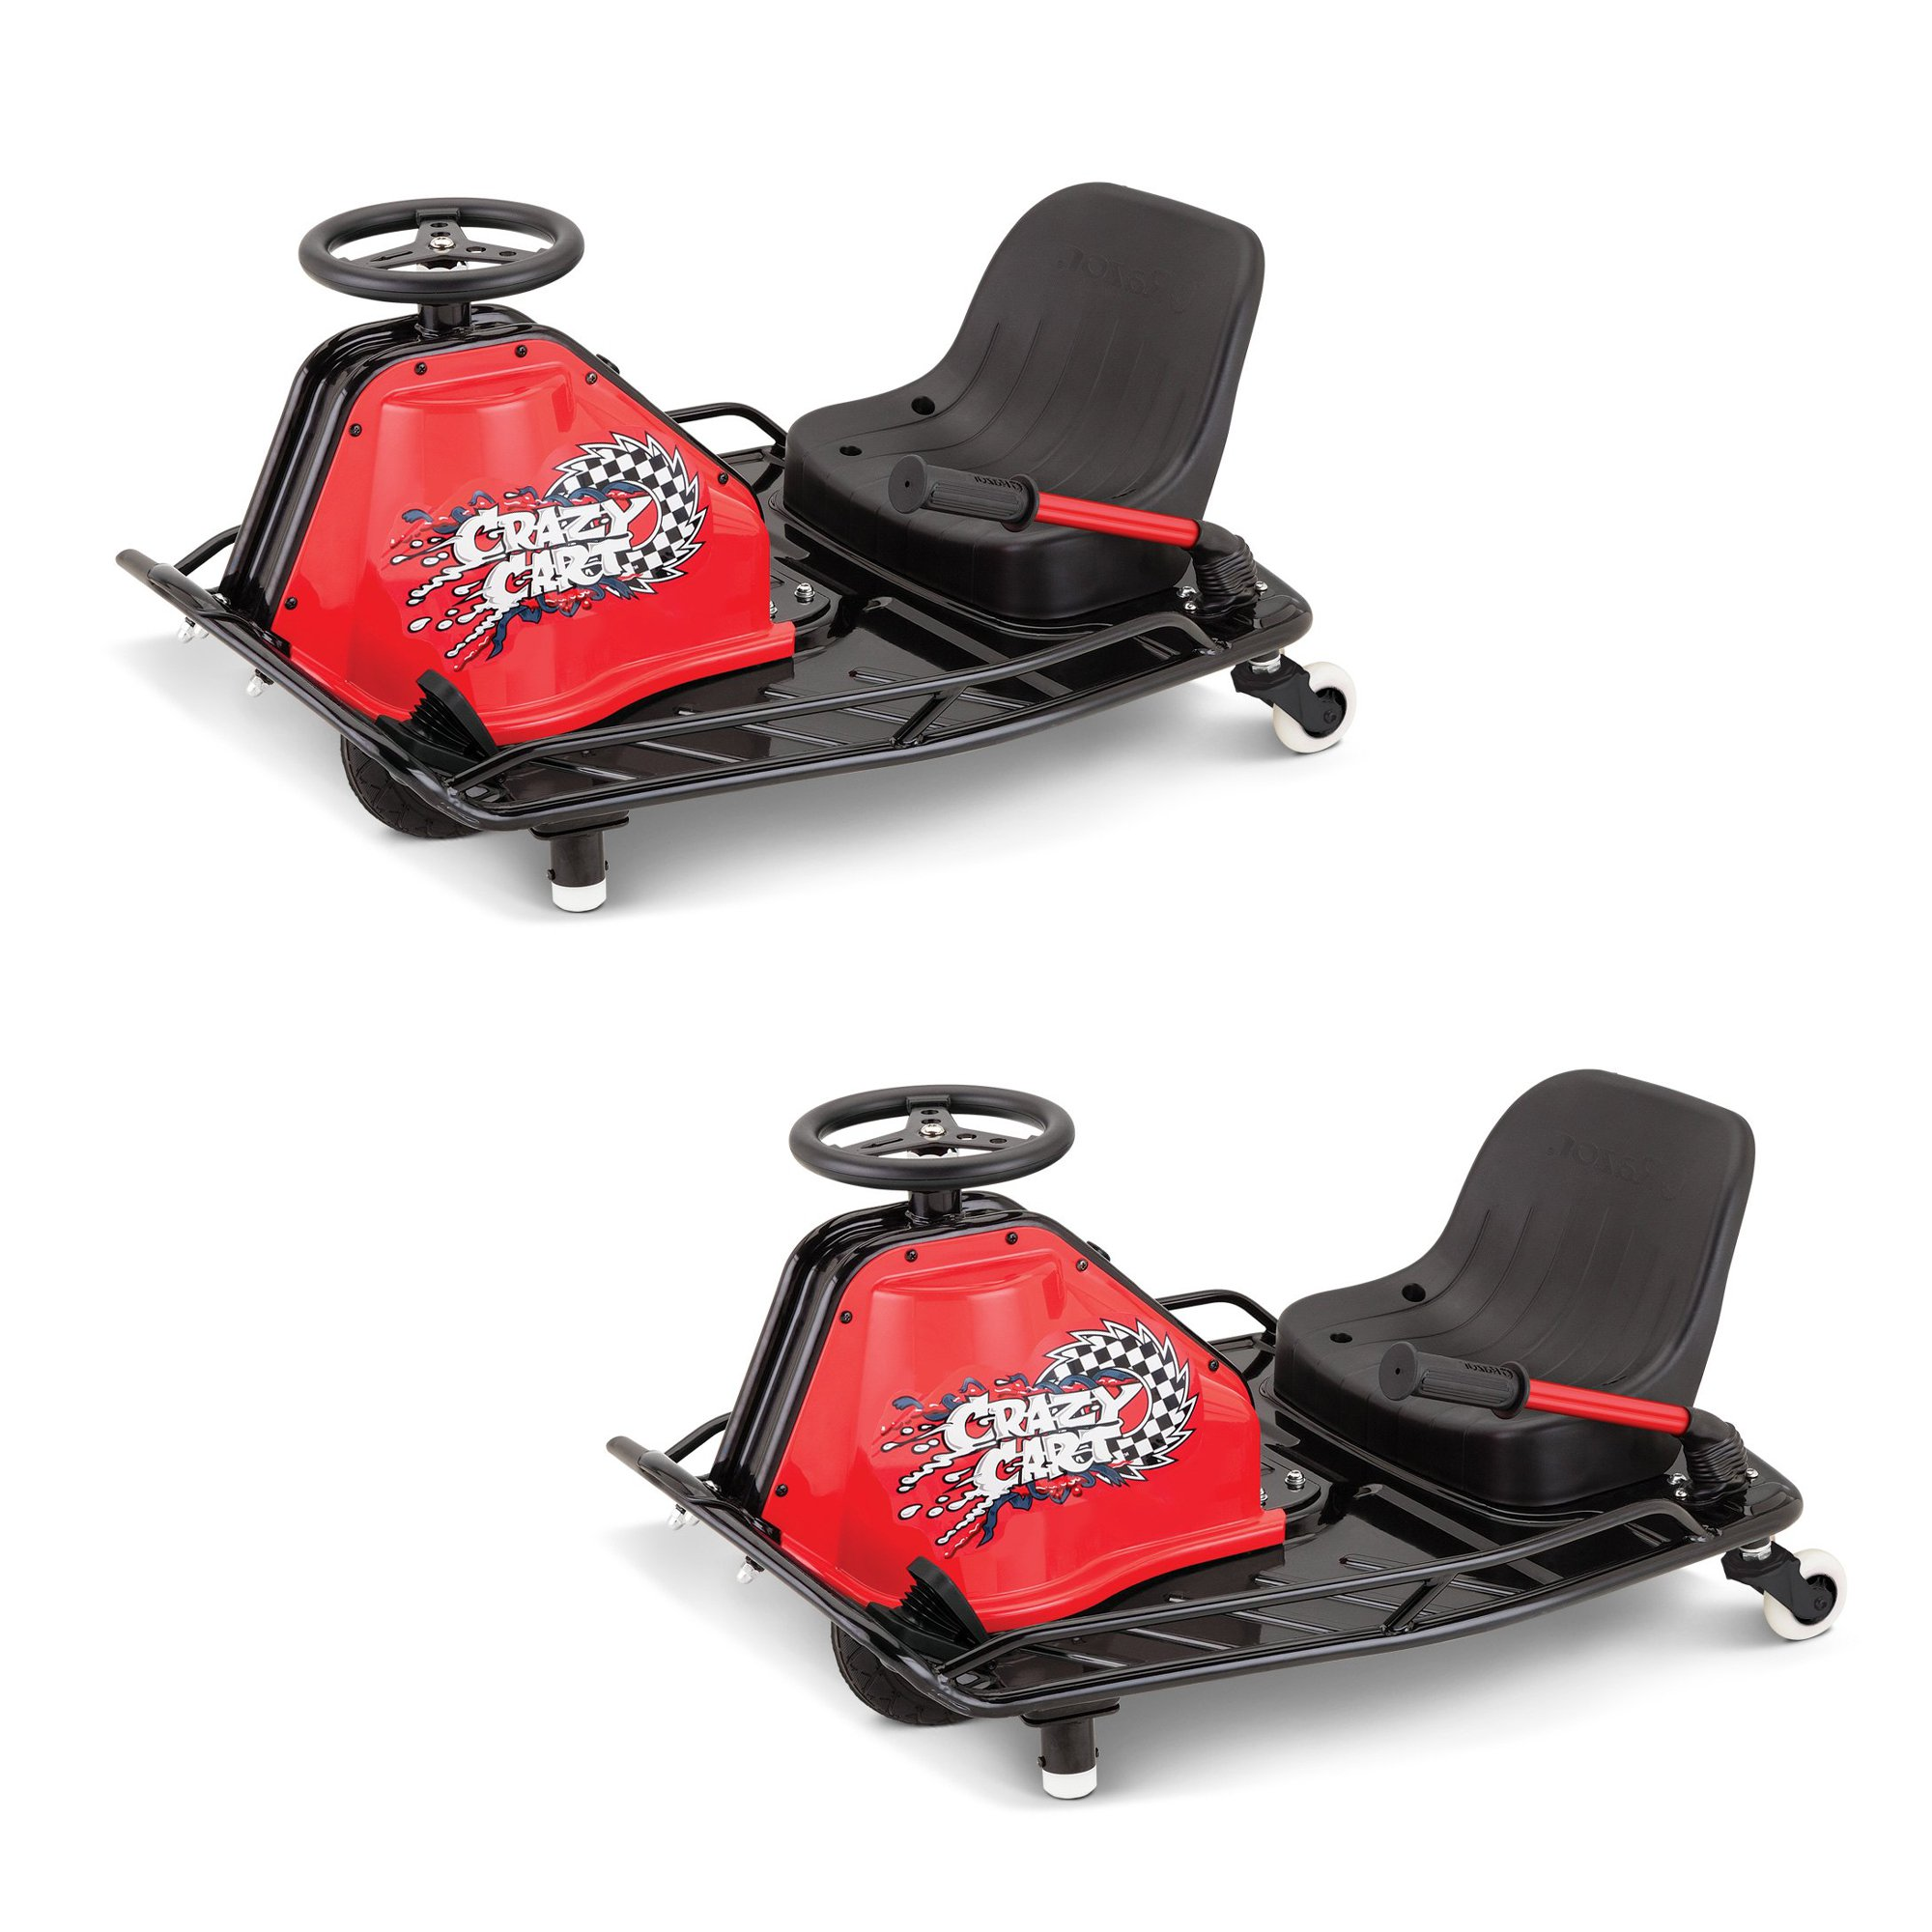 Razor Crazy Cart Electric 360 Spinning Drifting Kids Ride